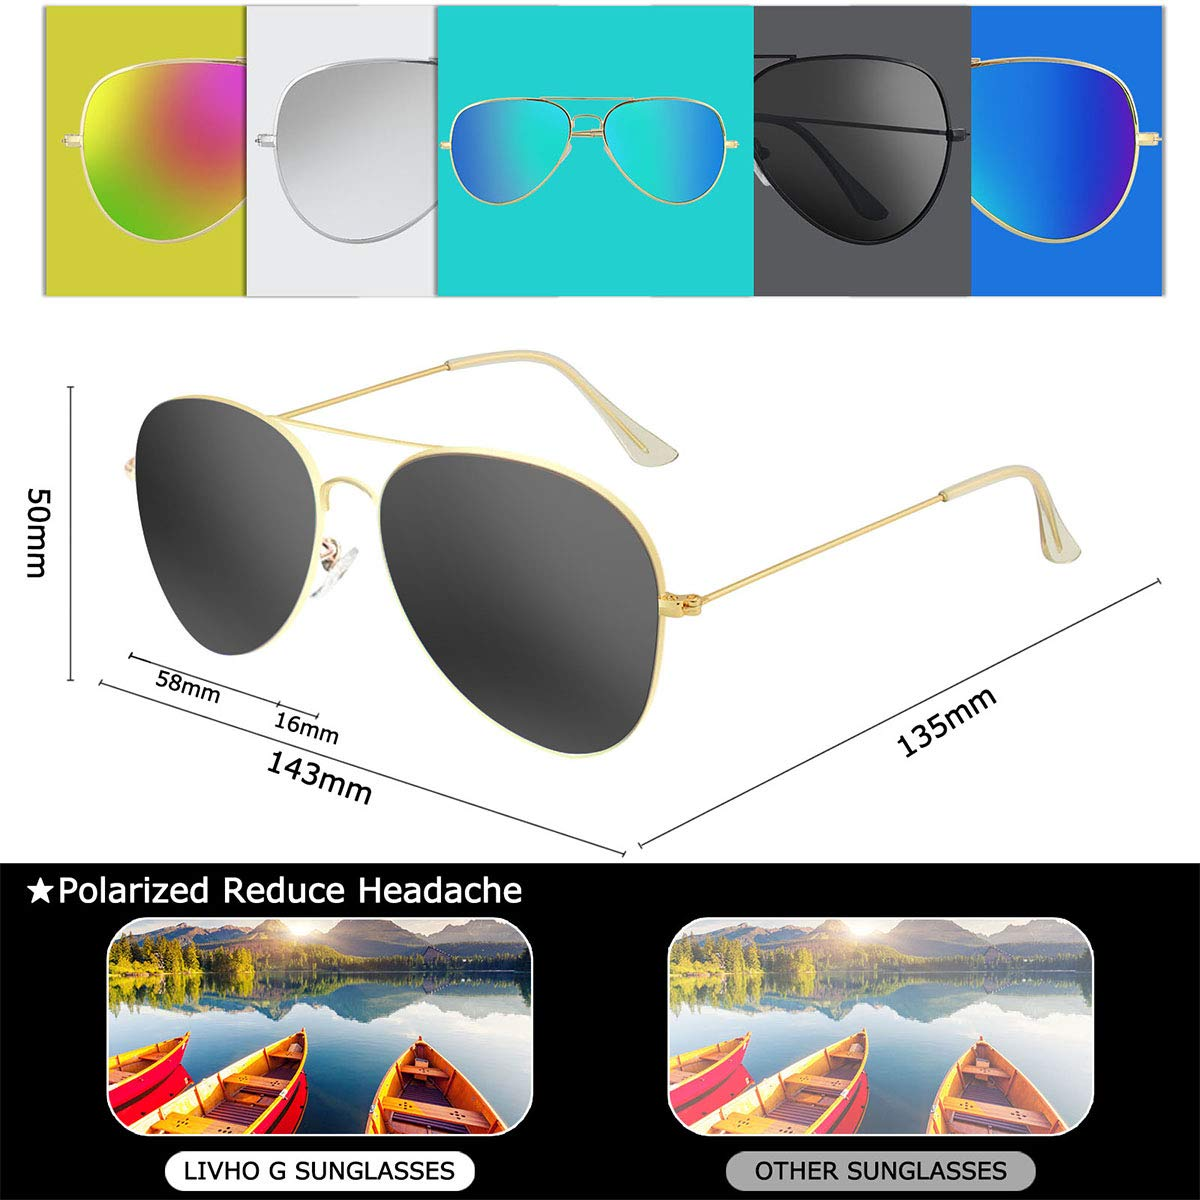 Livhò Sunglasses for Men Women Aviator Polarized Metal Mirror UV 400 Lens Protection (Gold Grey+Blue Green) by Livhò (Image #3)